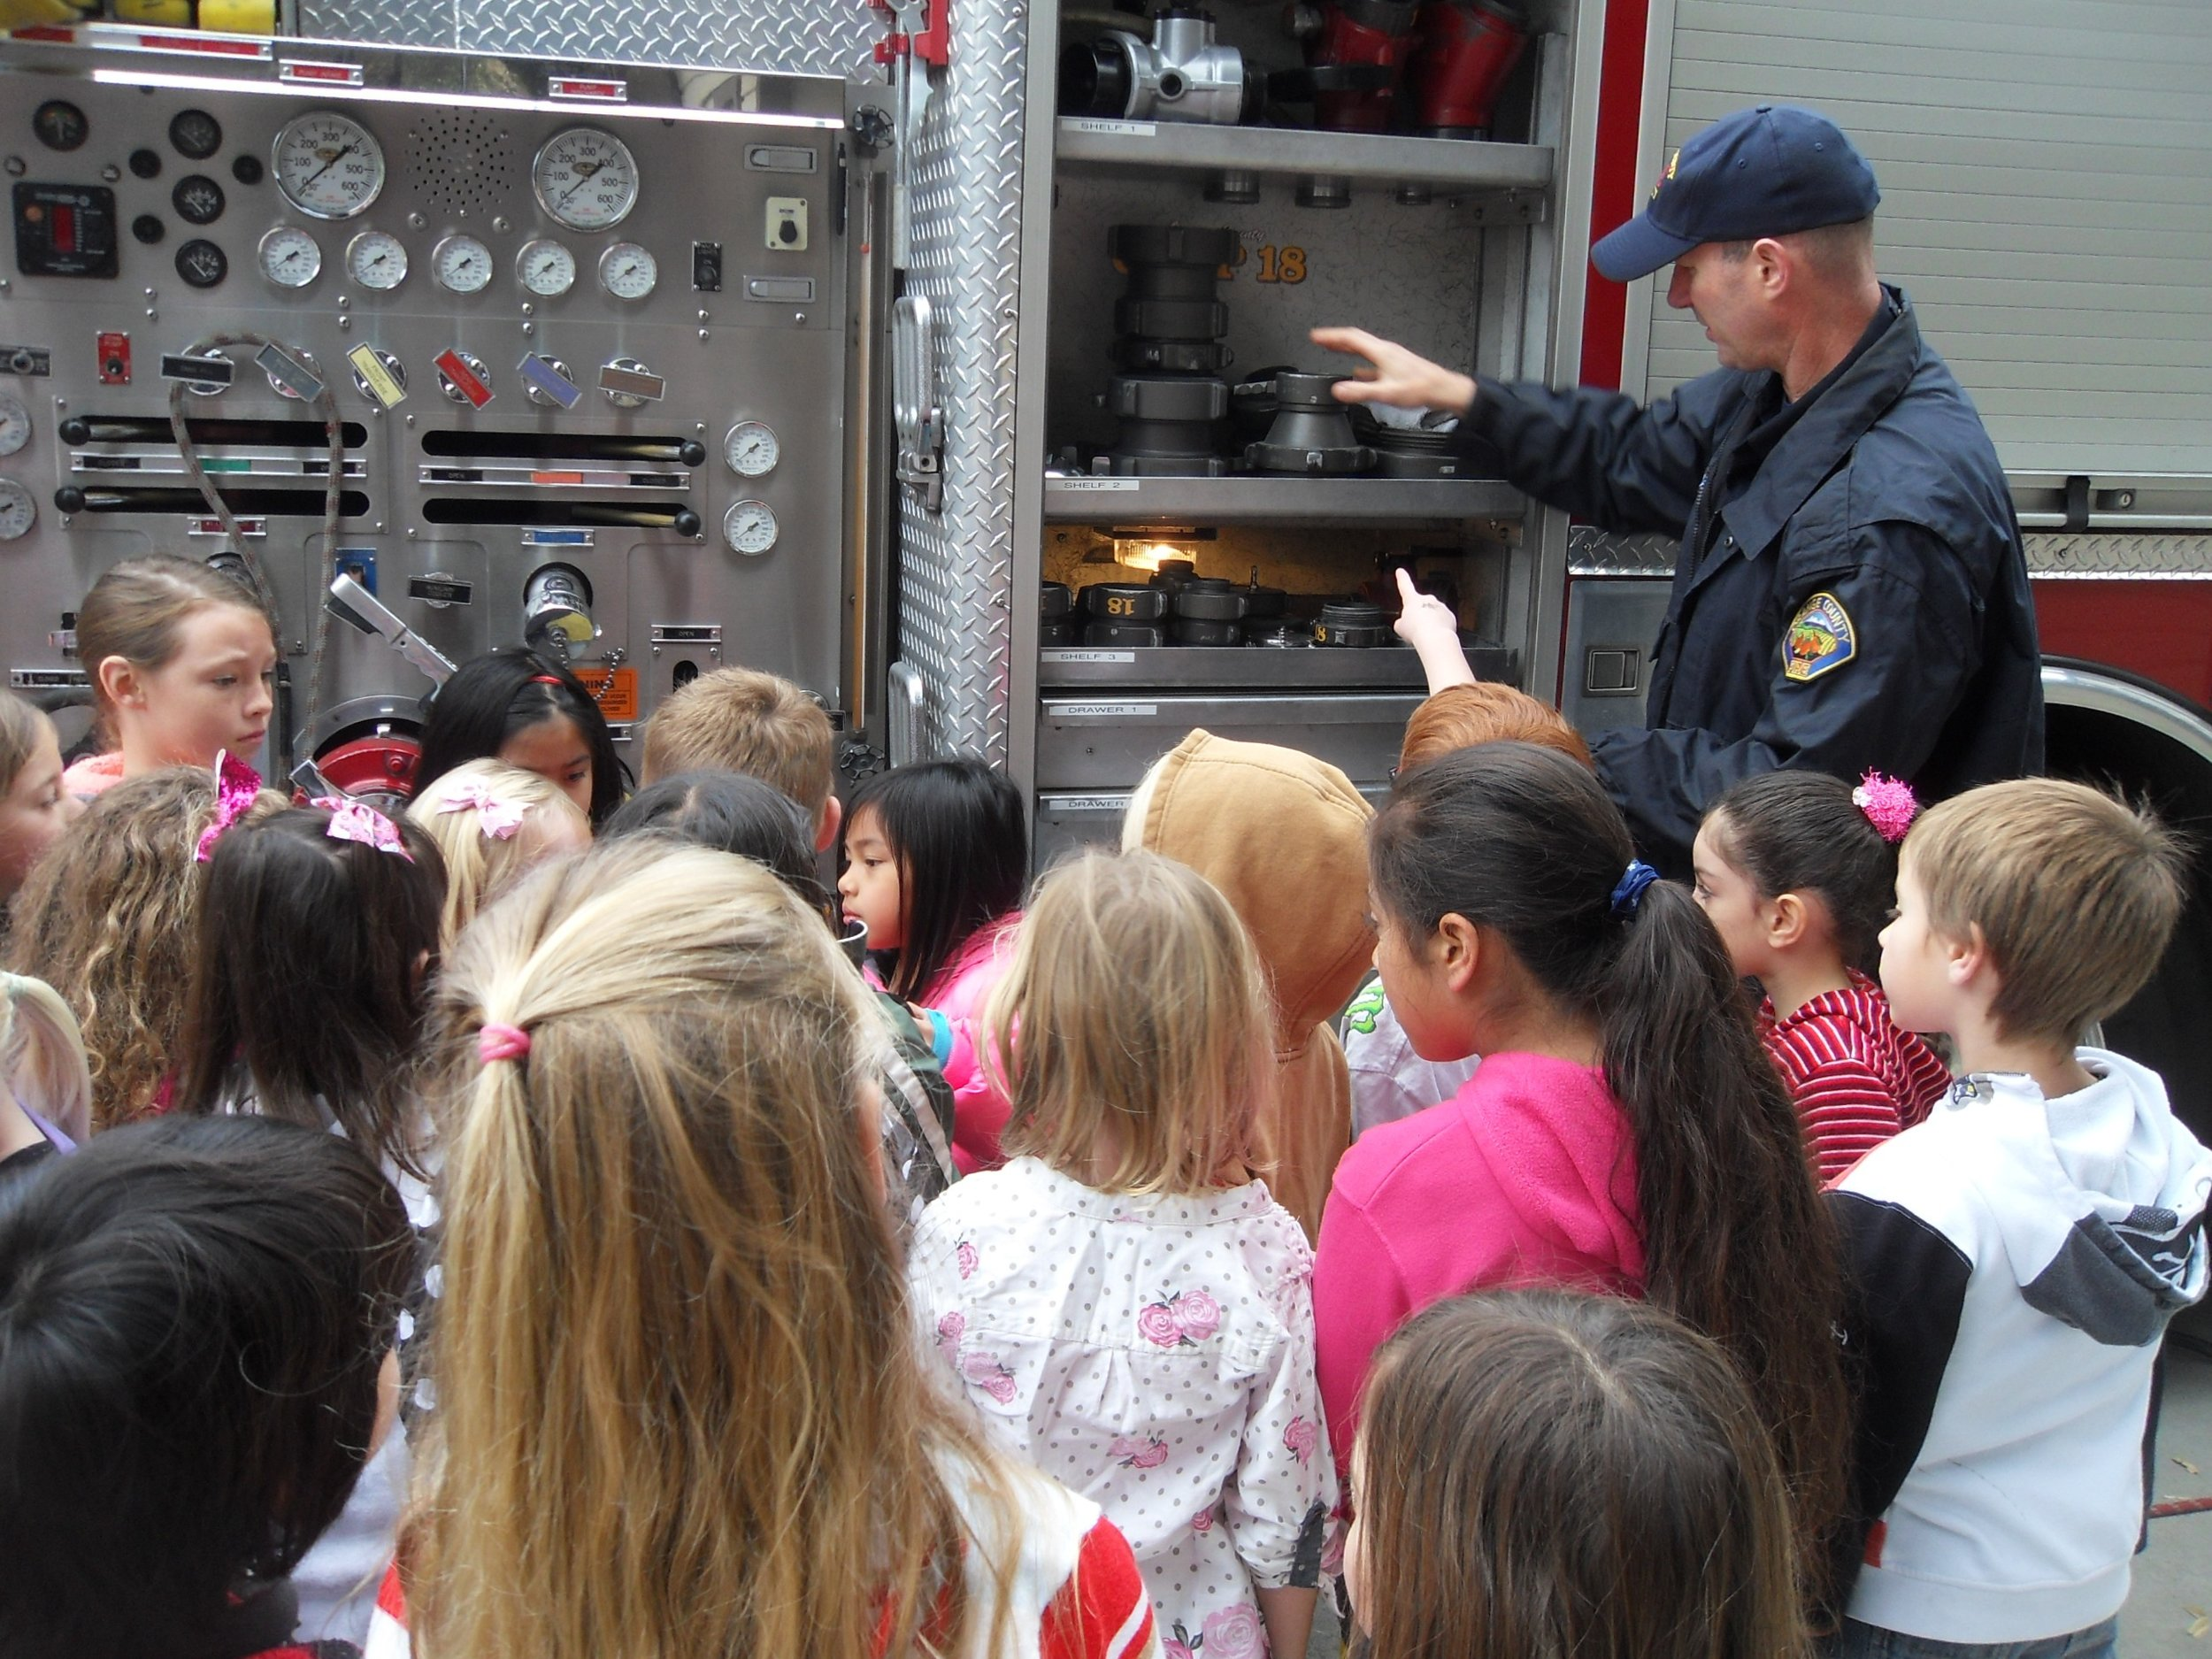 Students had meaningful questions to ask about the firetruck.